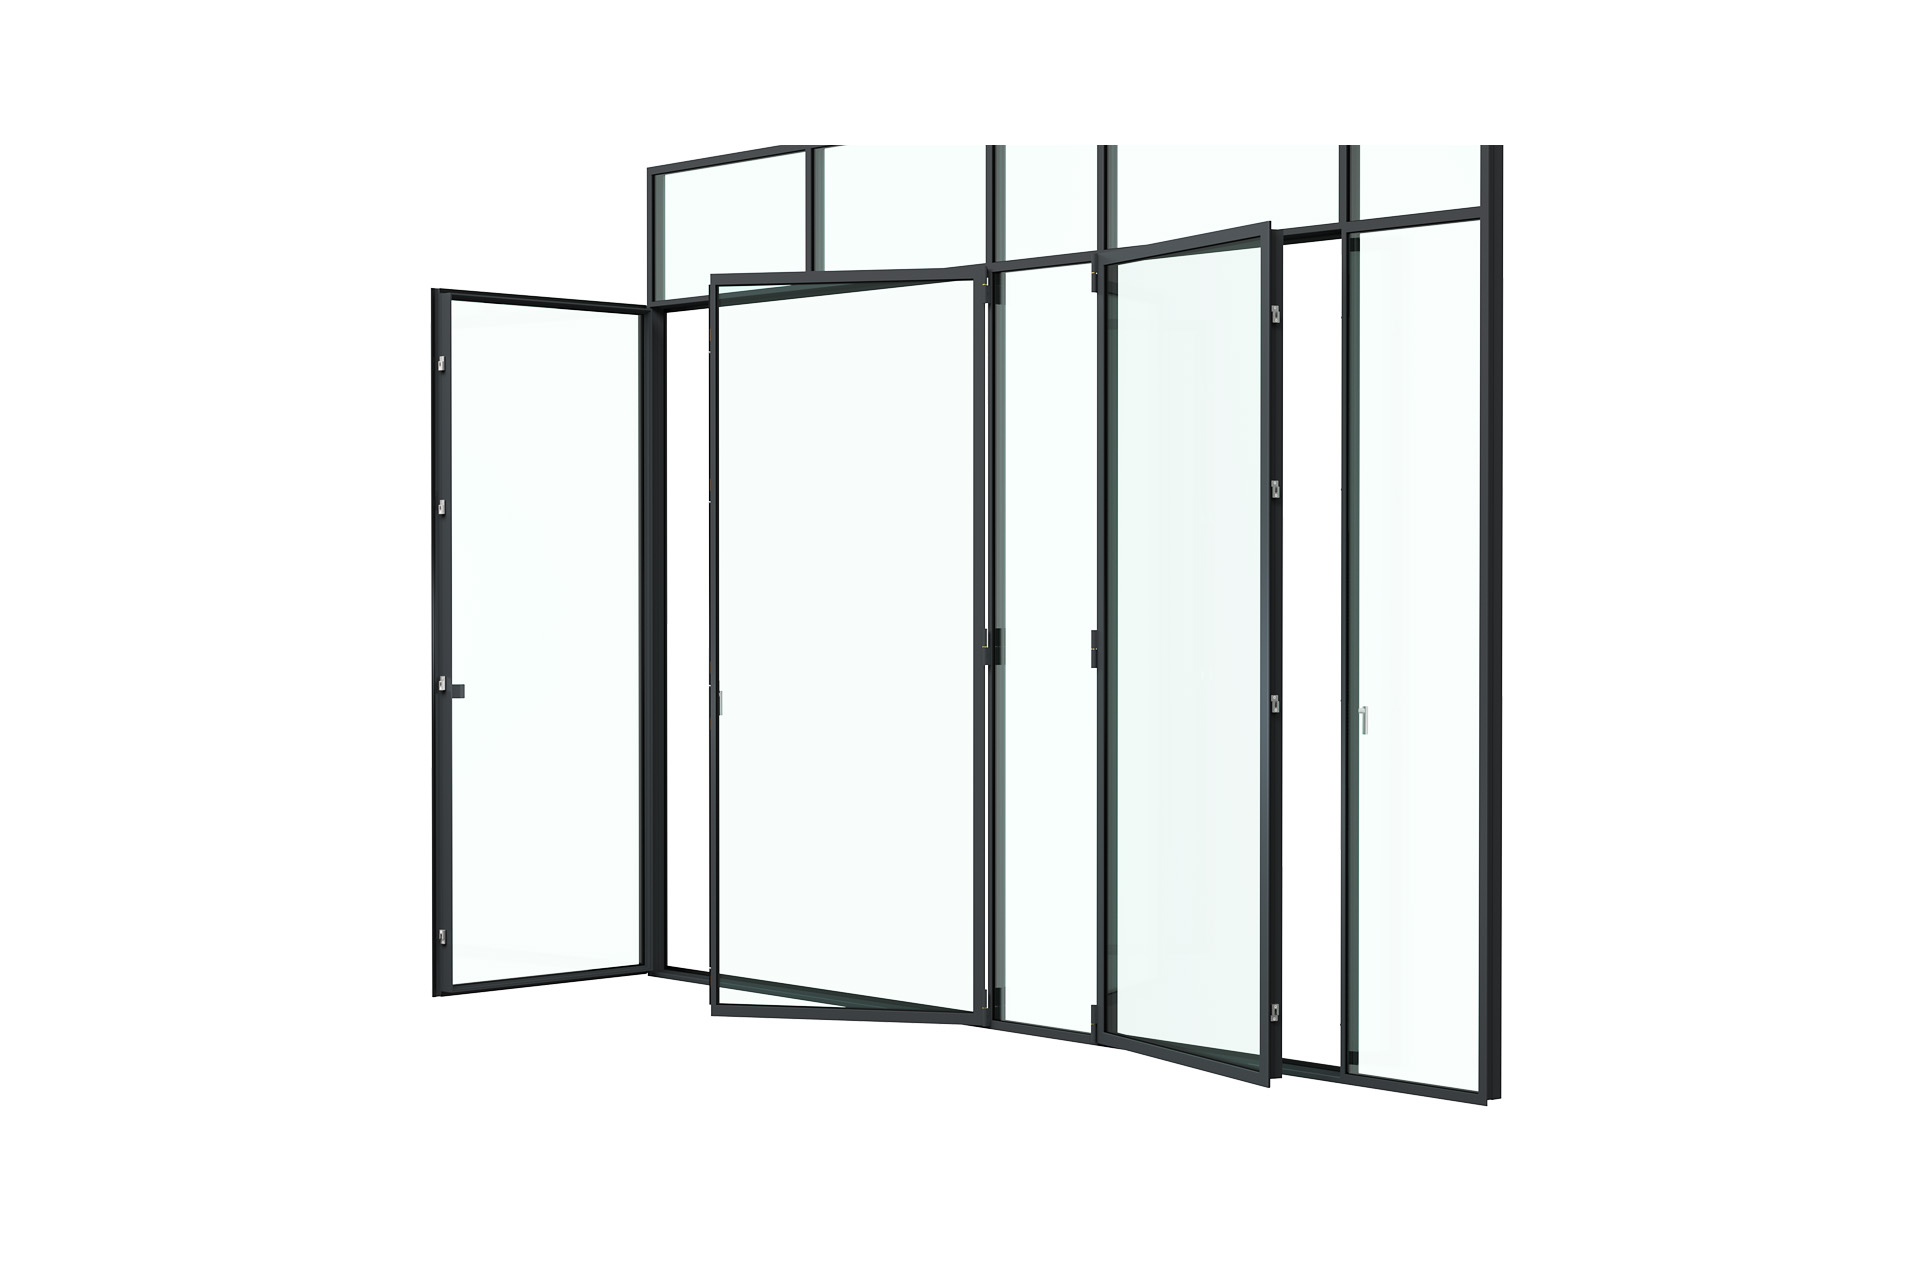 3d rendering side view of MHB steel French doors